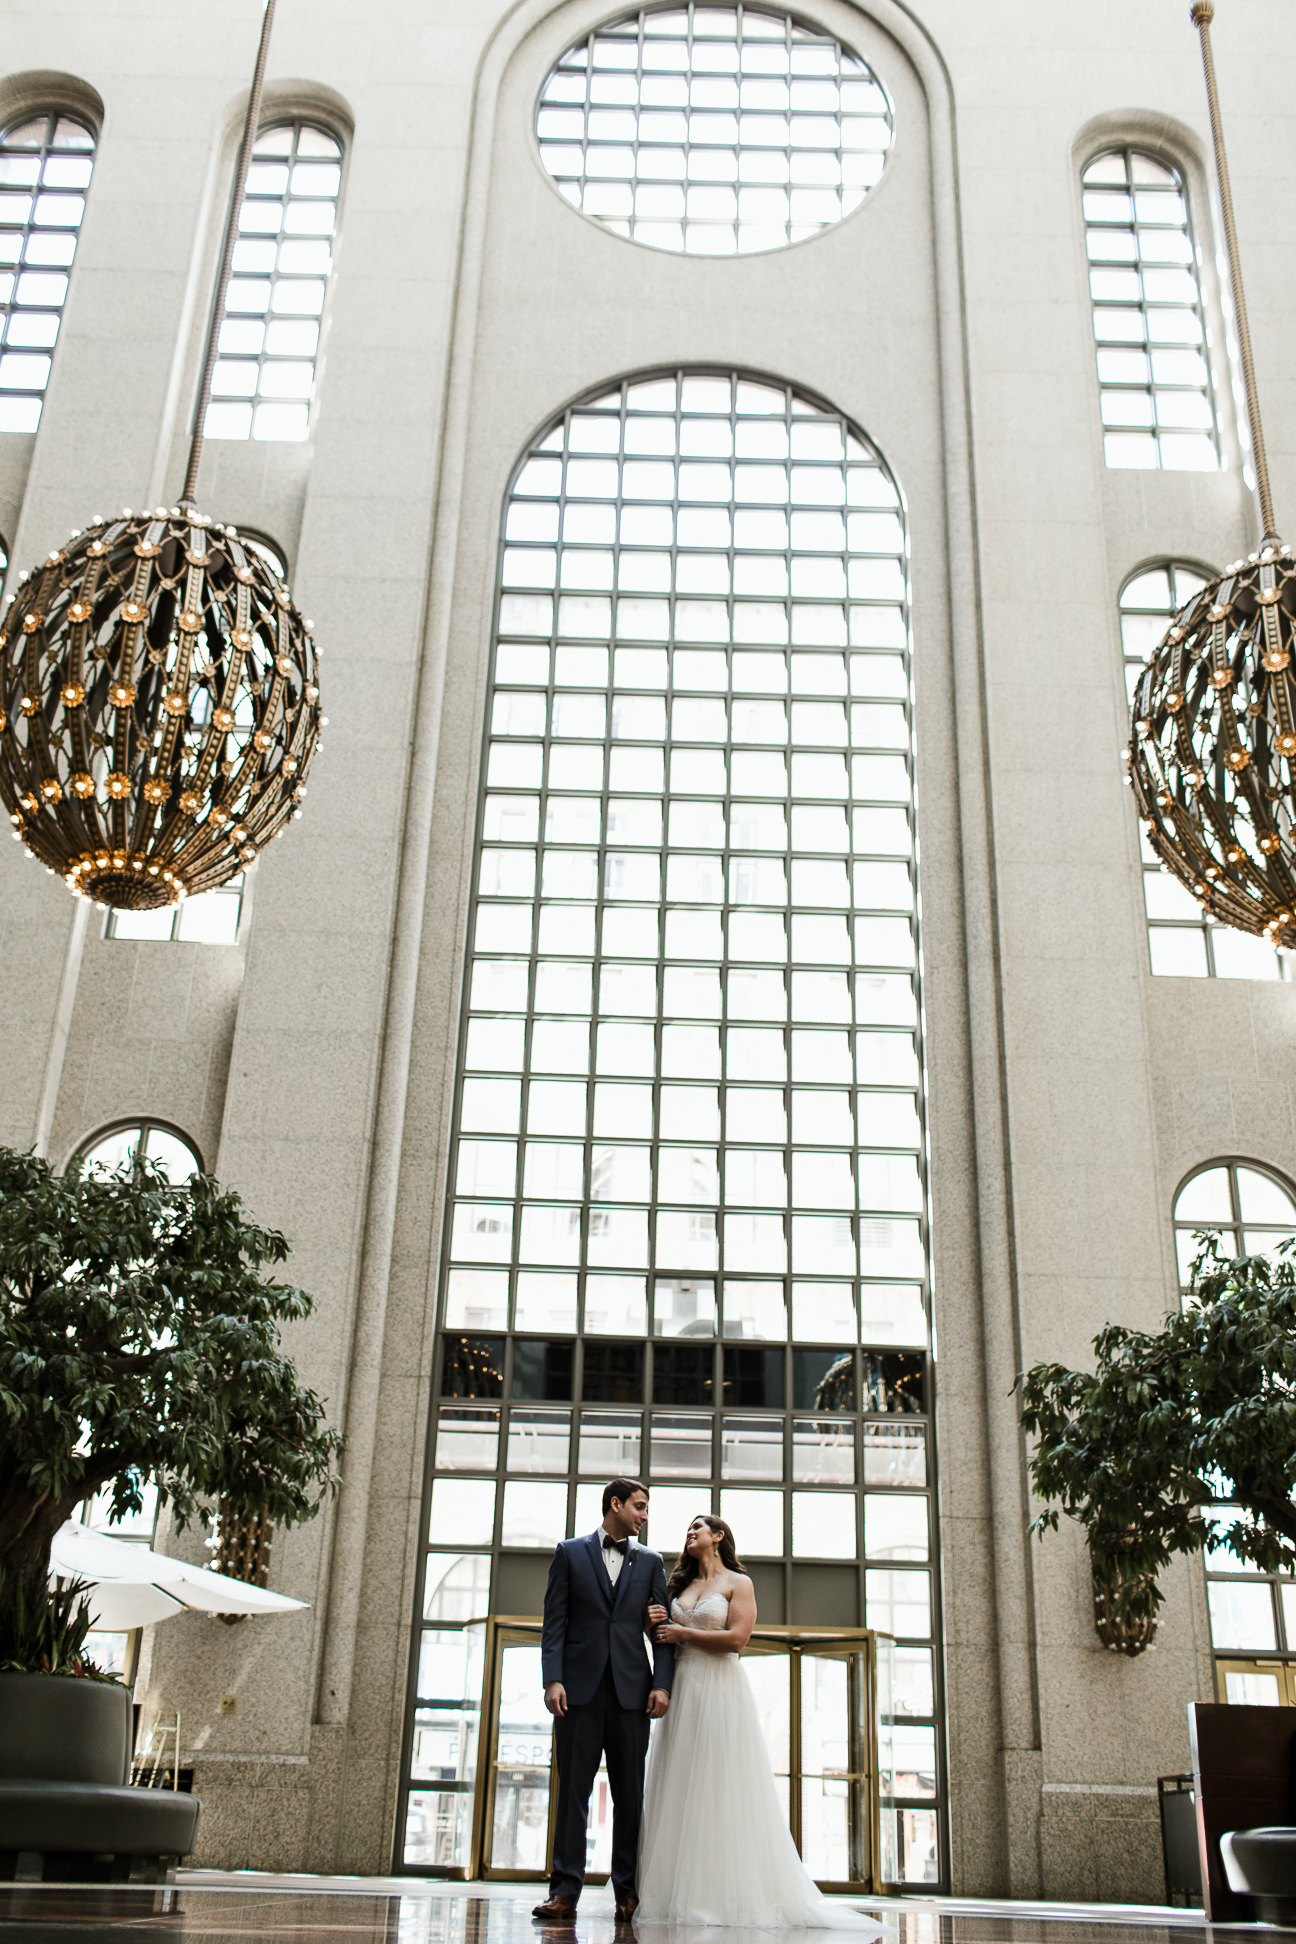 Gianna Keiko Atlanta NYC California Wedding Elopement Photographer_Sneak Peek-12.jpg